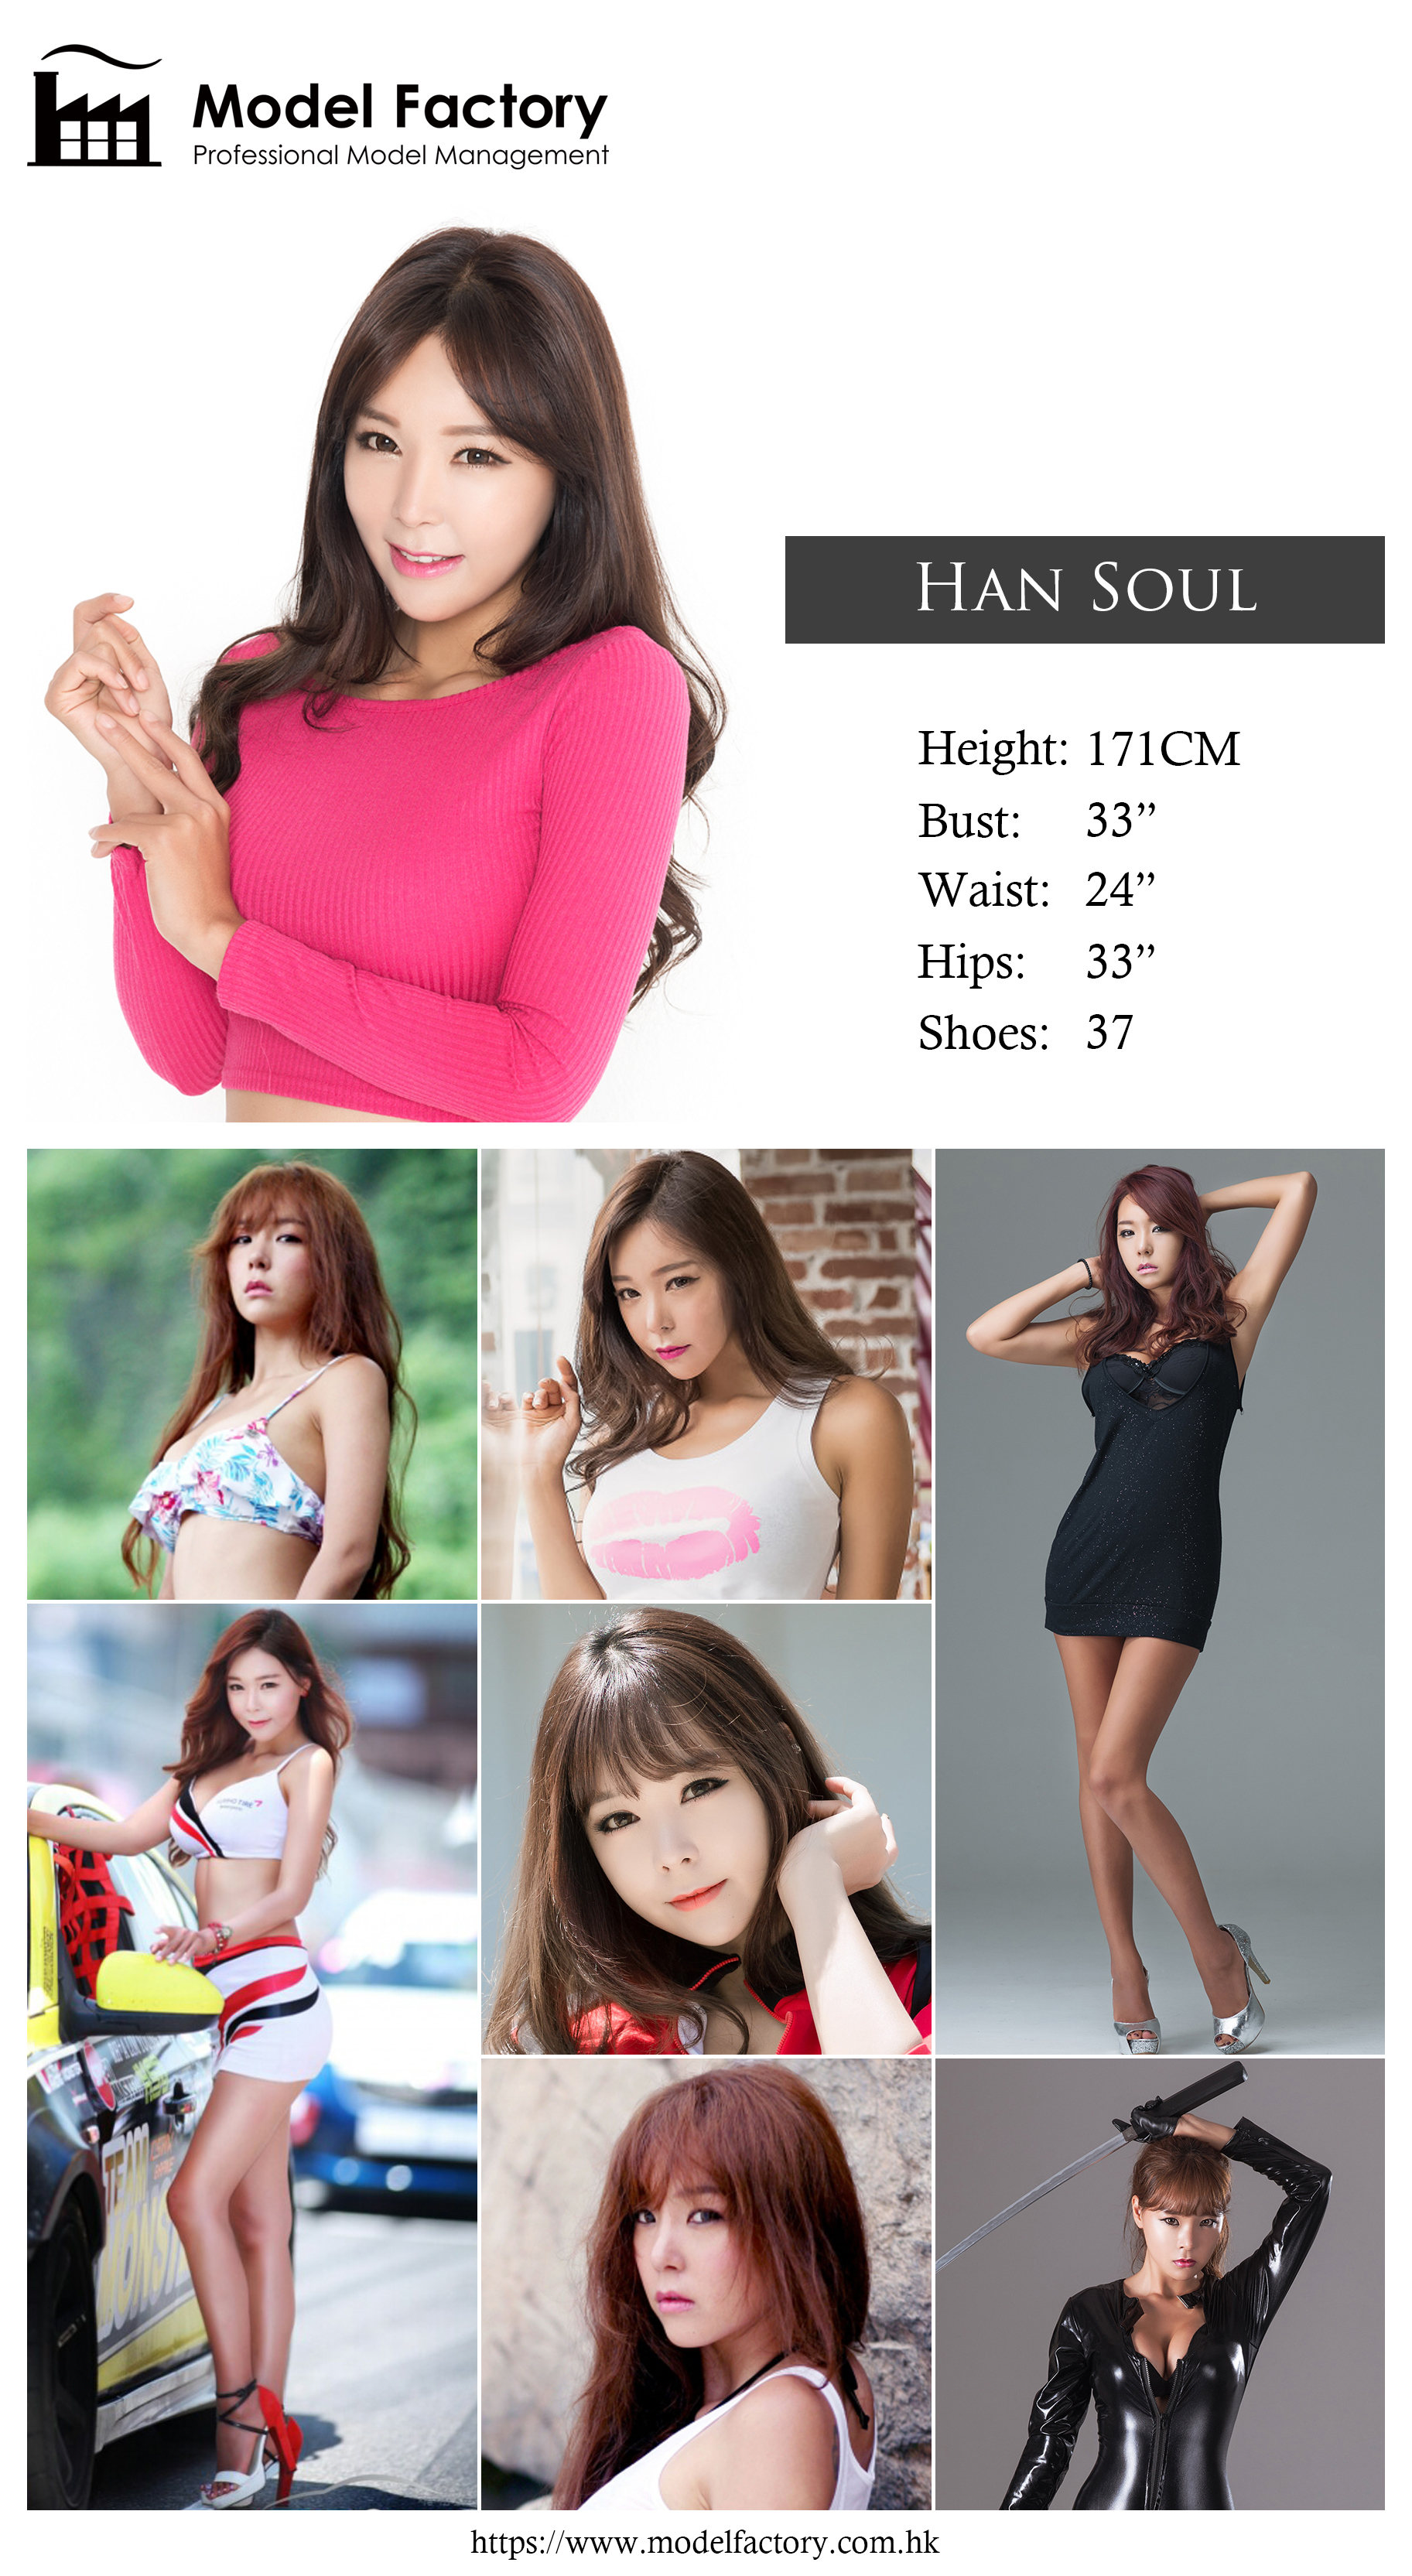 Model Factory Korean Female Model HanSoul